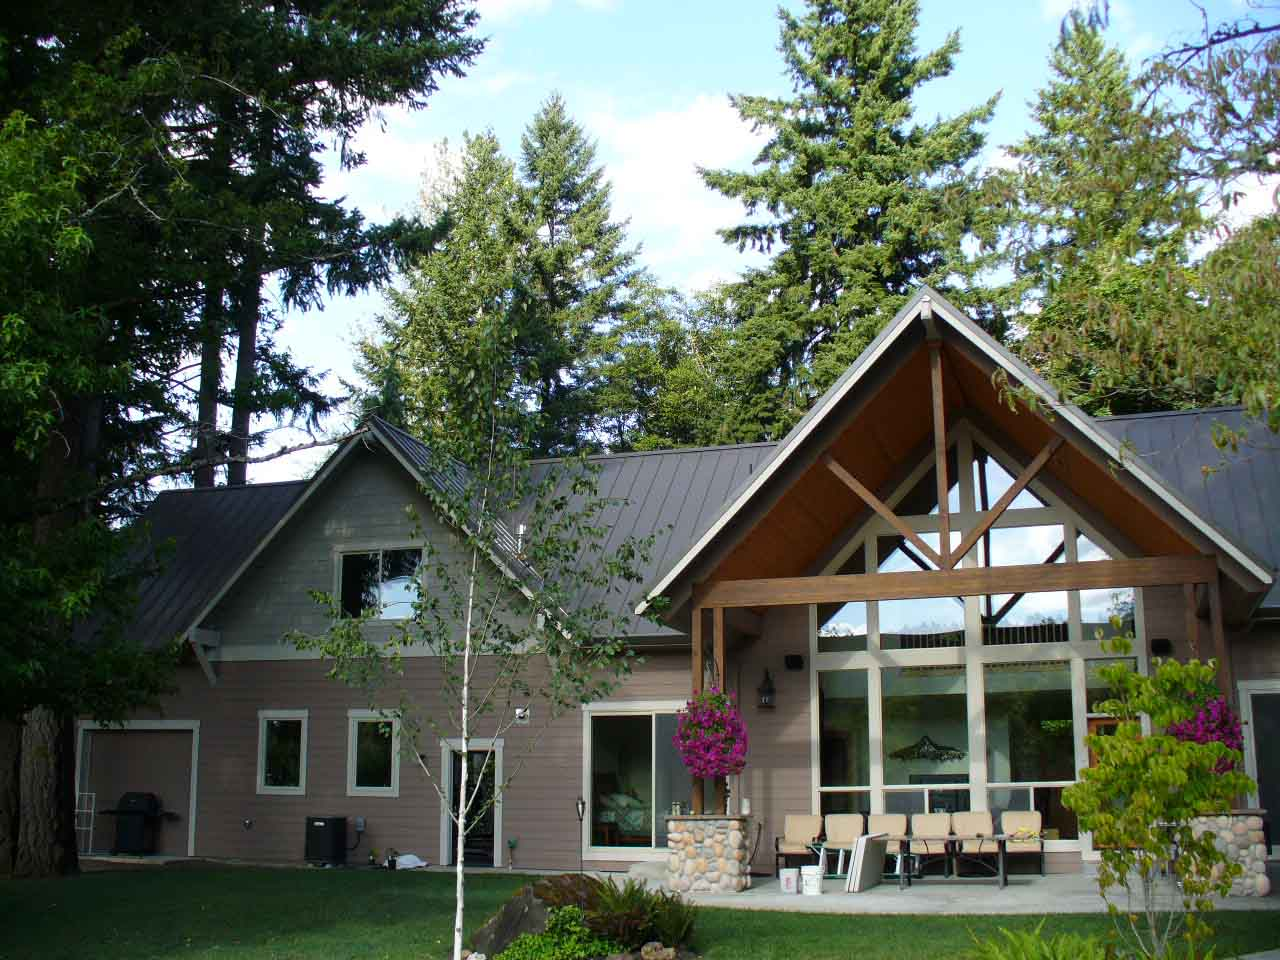 River front home with Loc-Seam metal roof